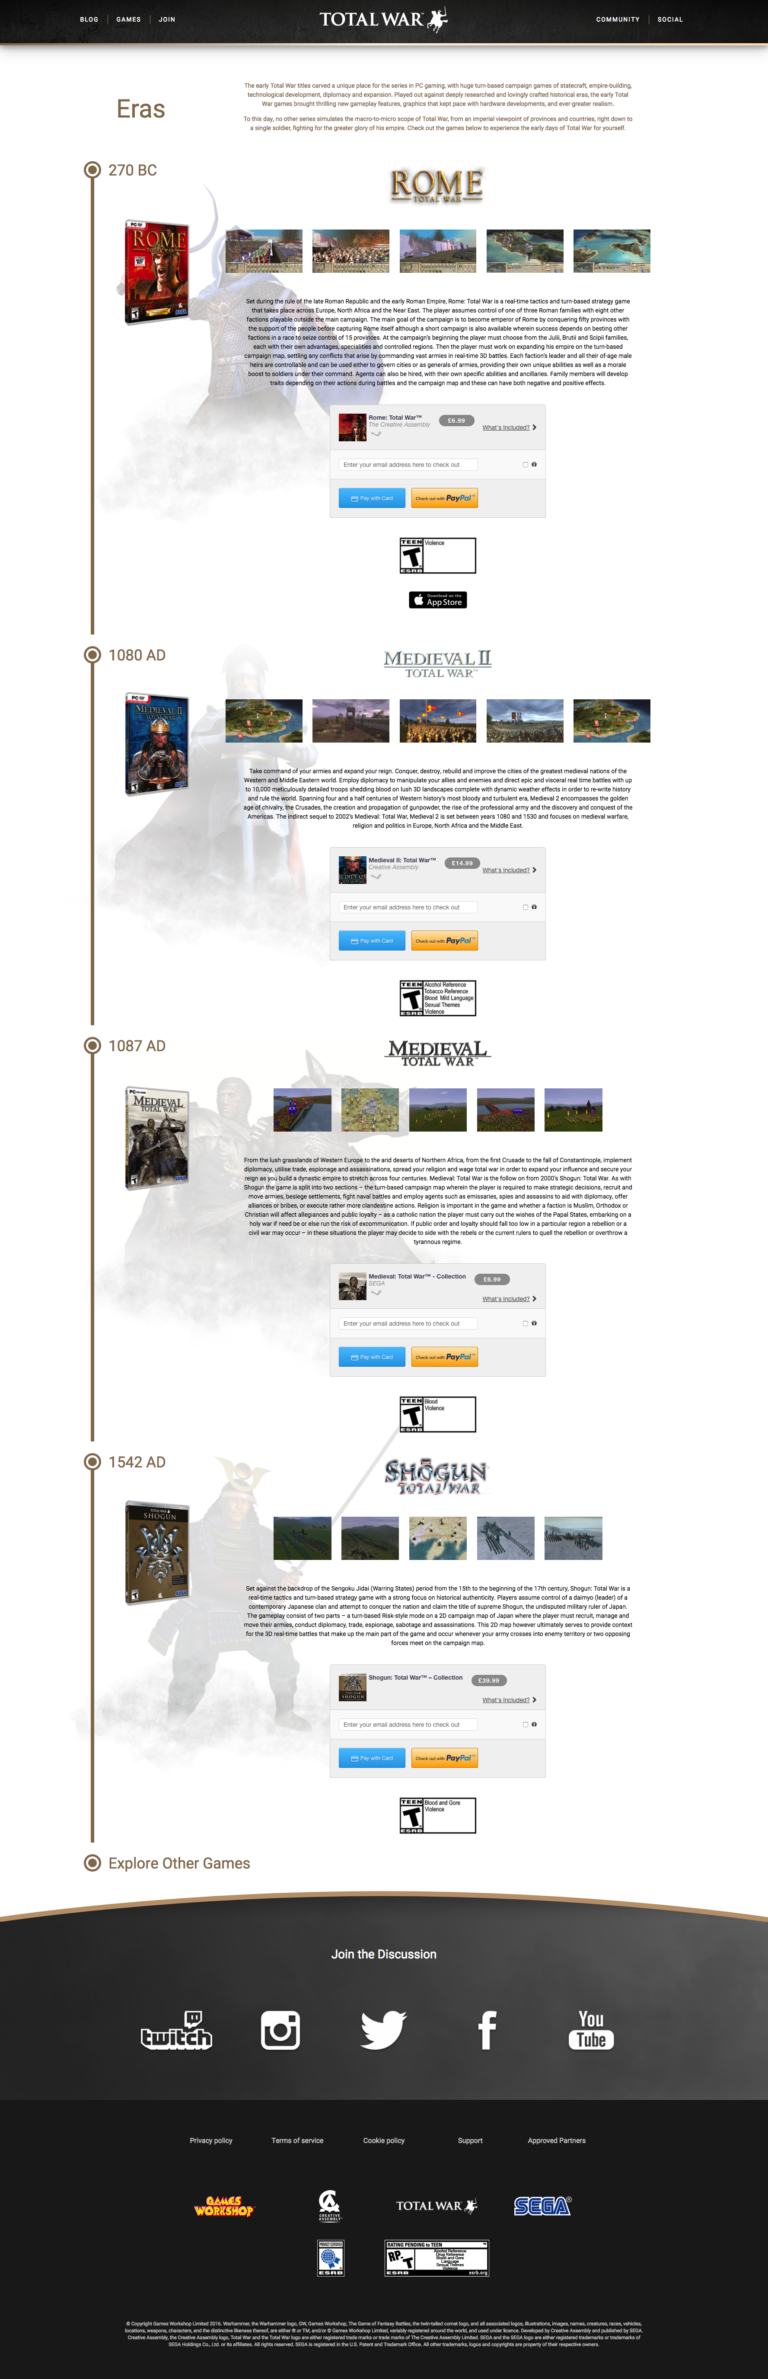 Total War - Eras Page